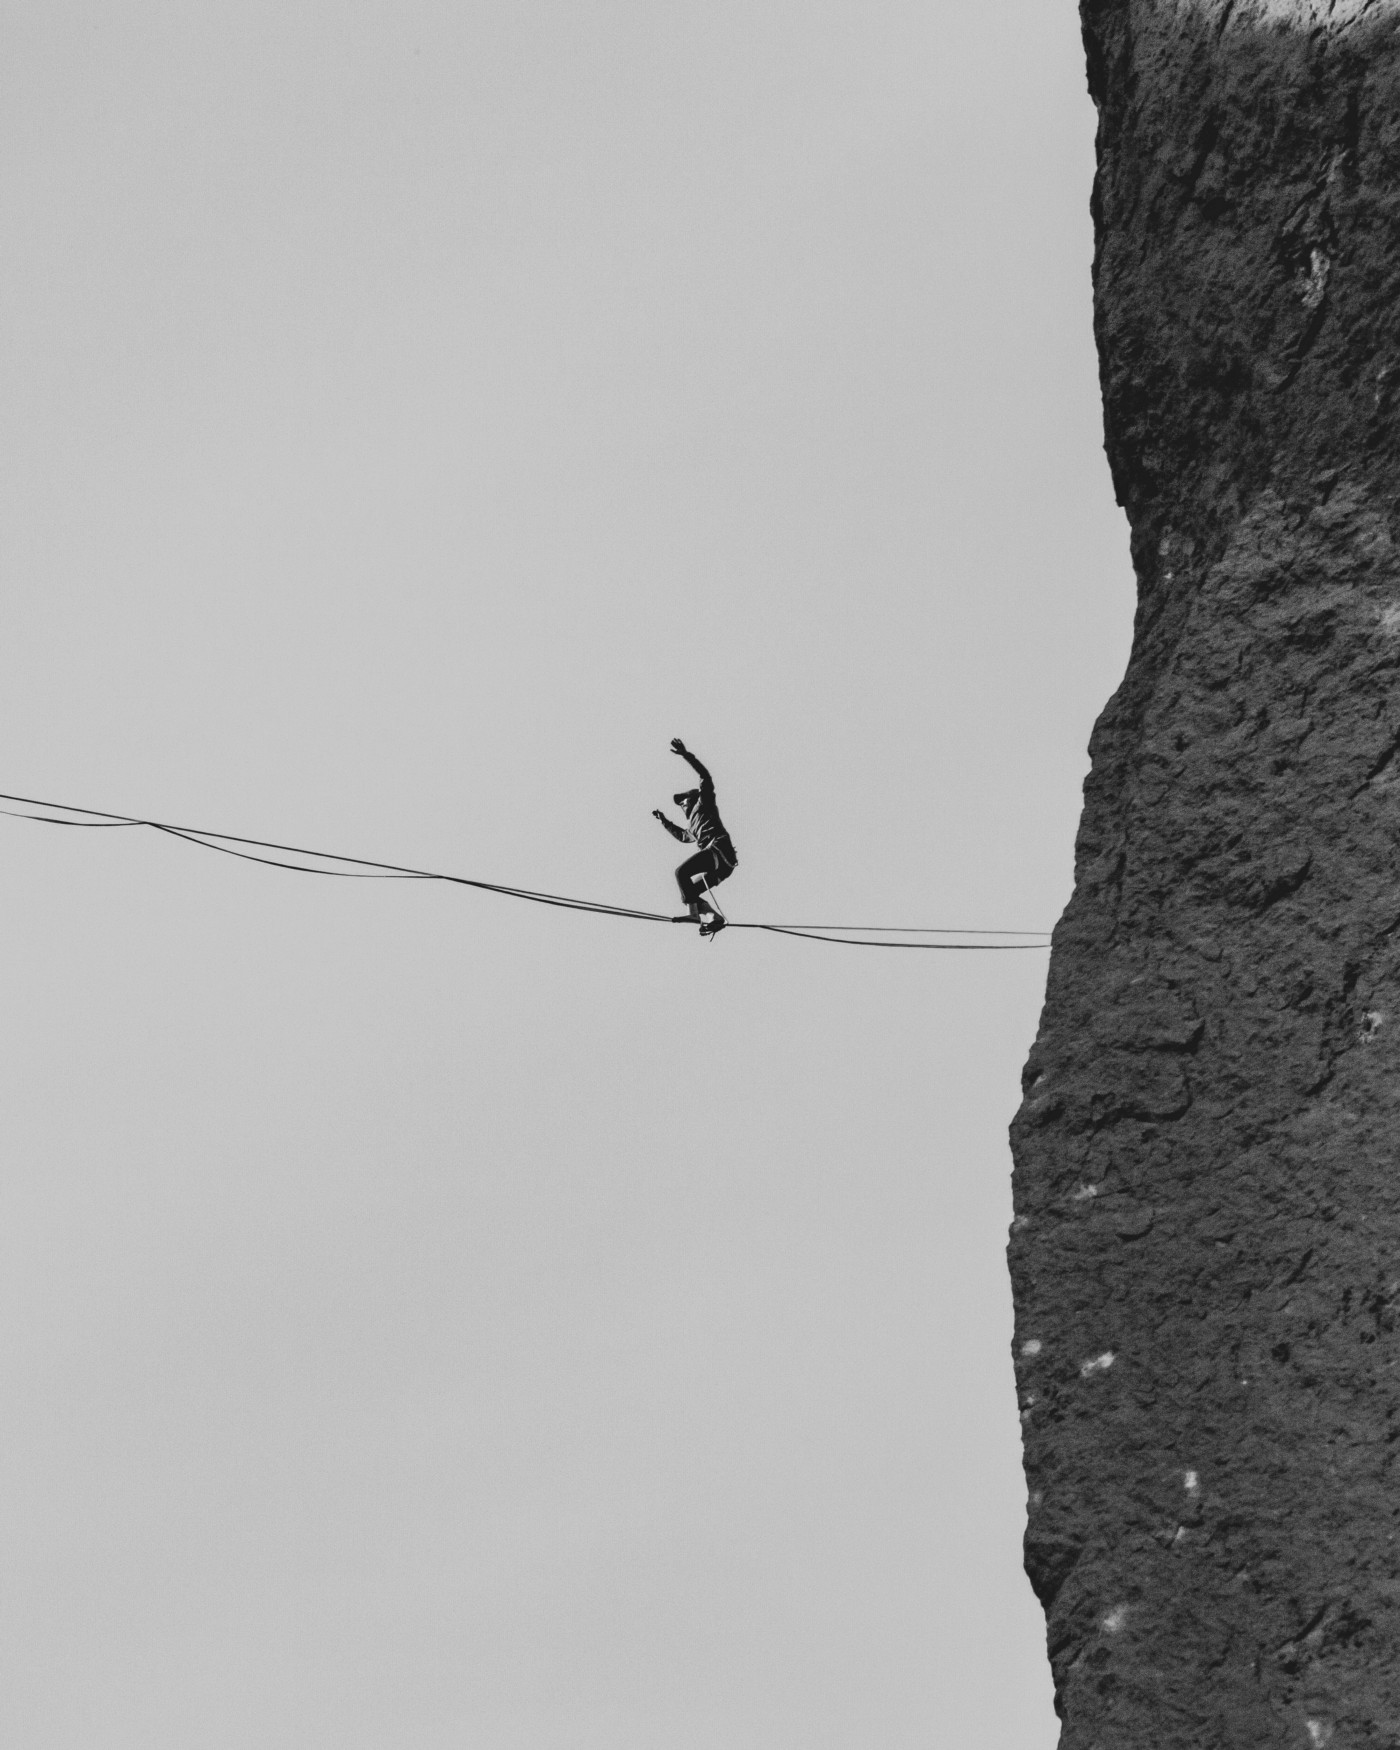 A tightrope walker focuses on keeping his balance as he makes his way across a void